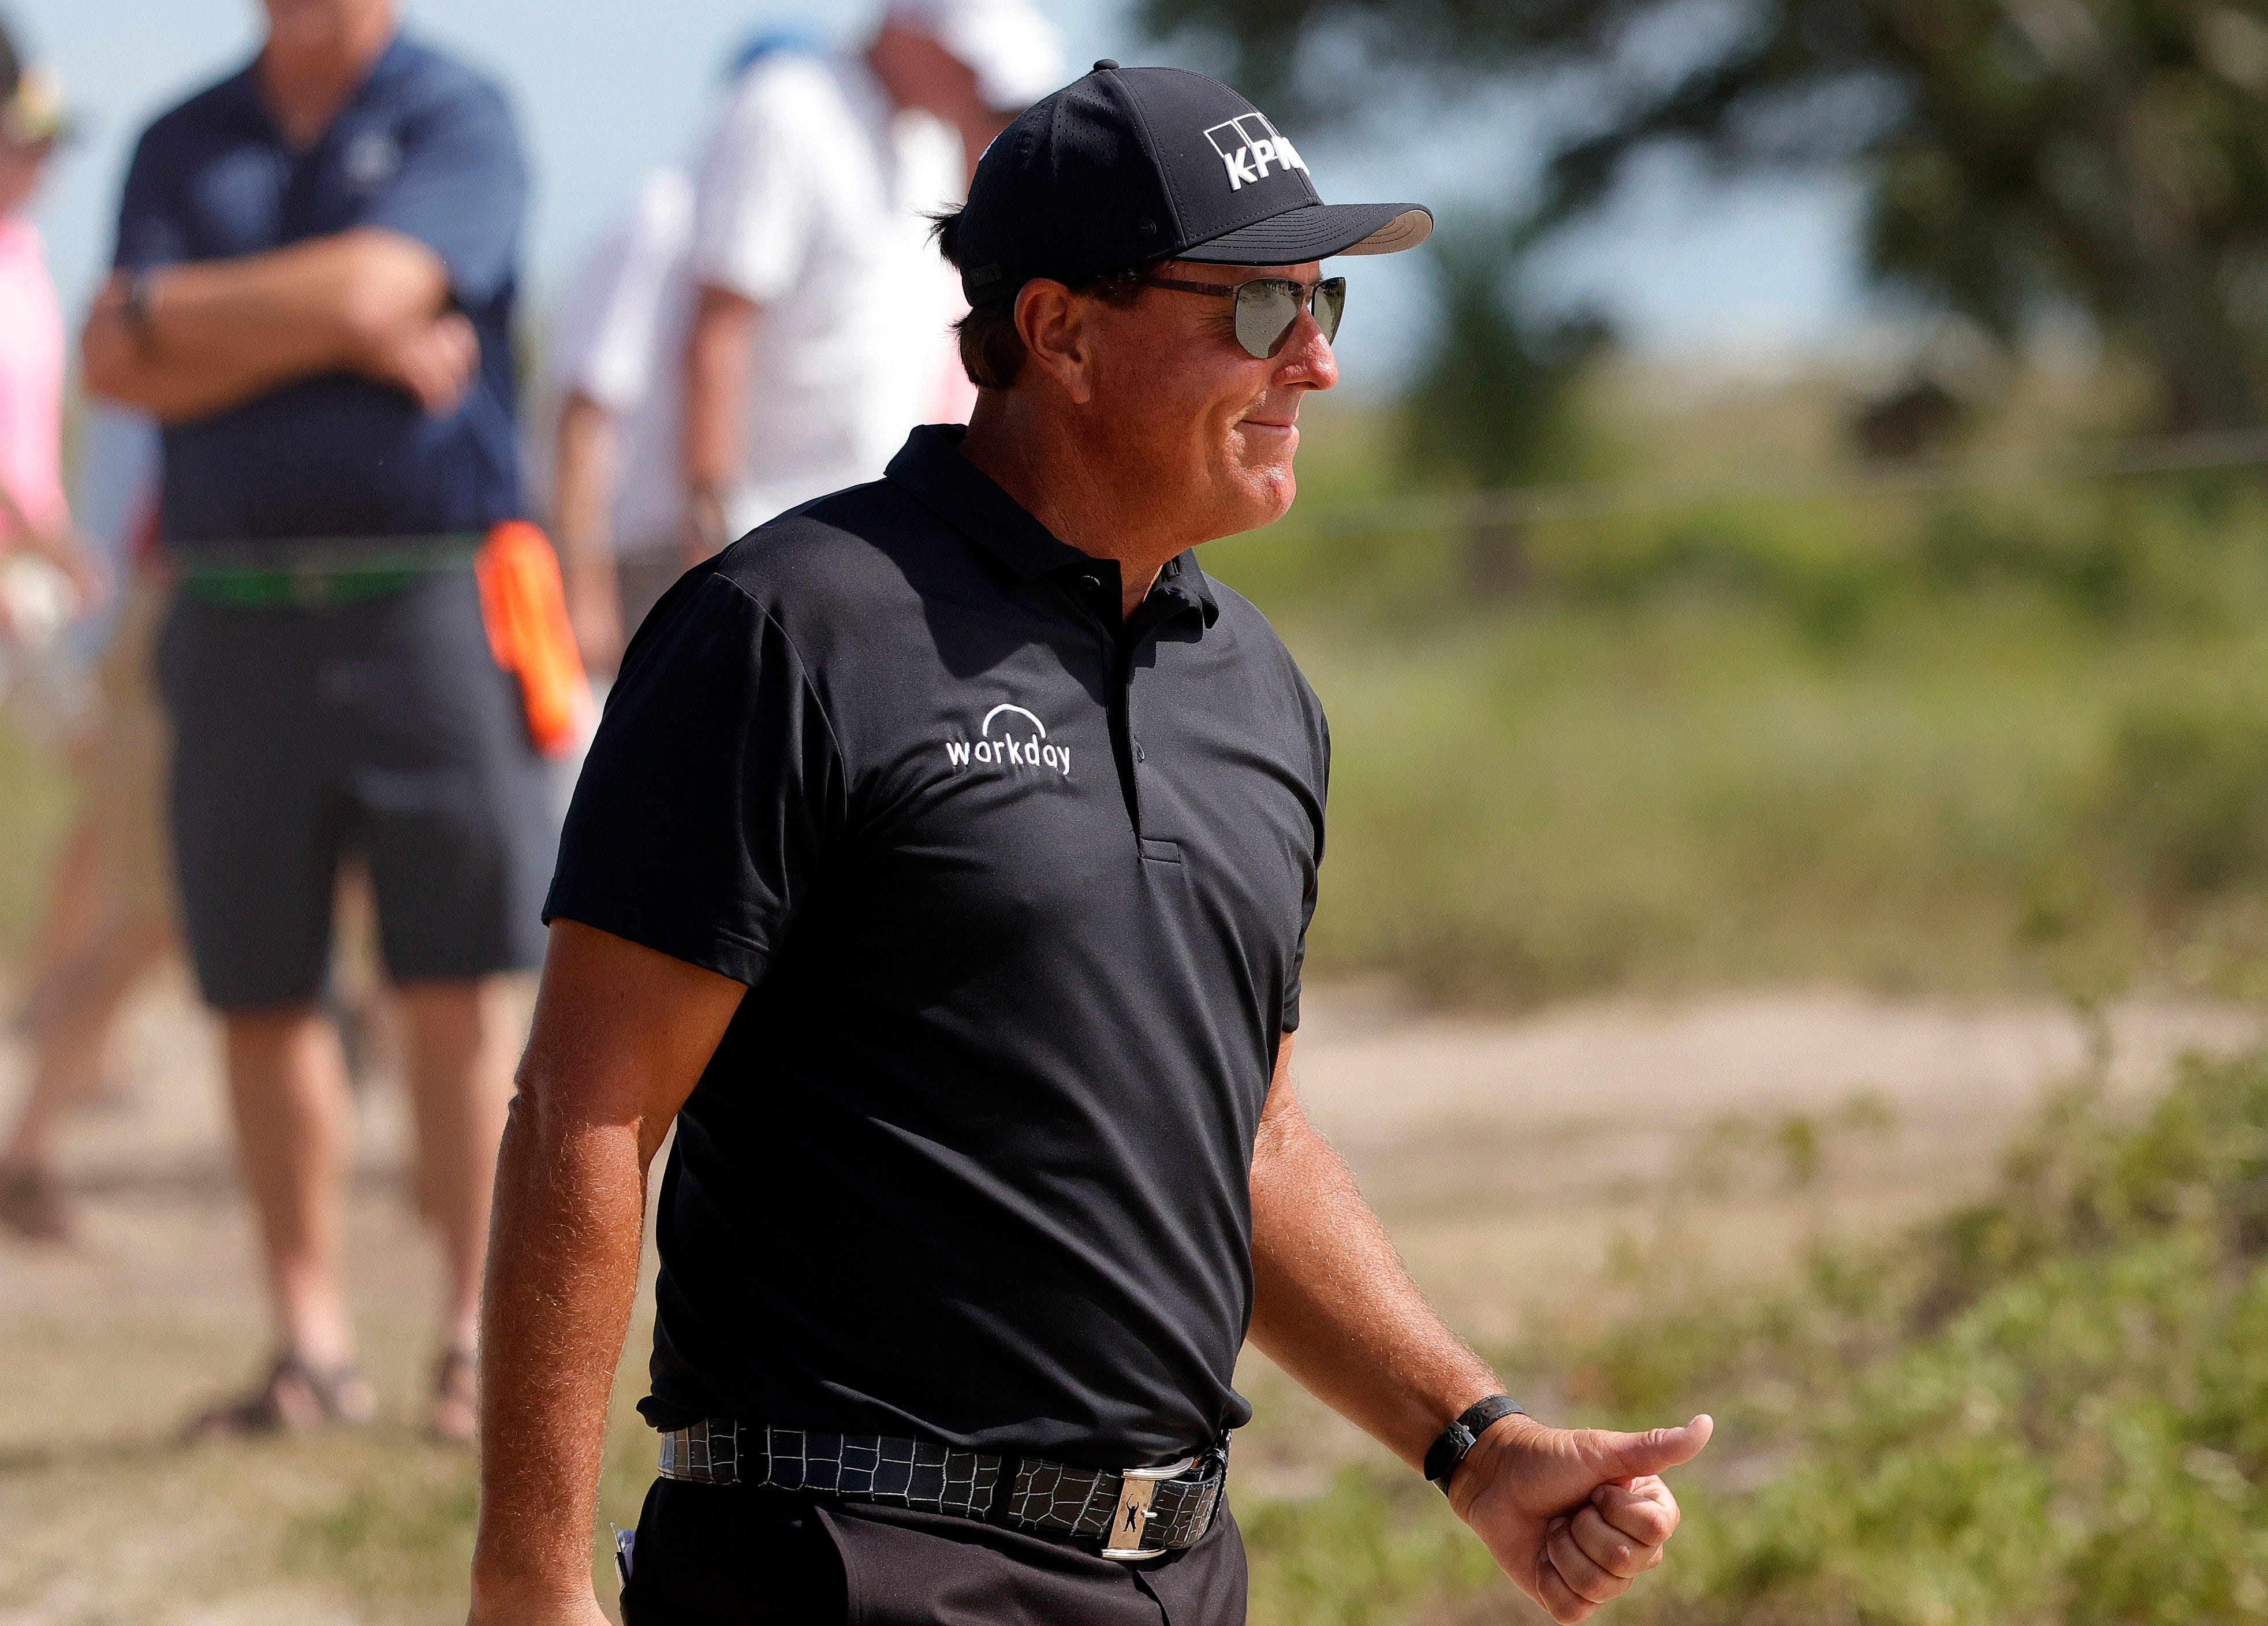 PGA Championship final round tee times for Sunday, featured groups, TV and streaming info